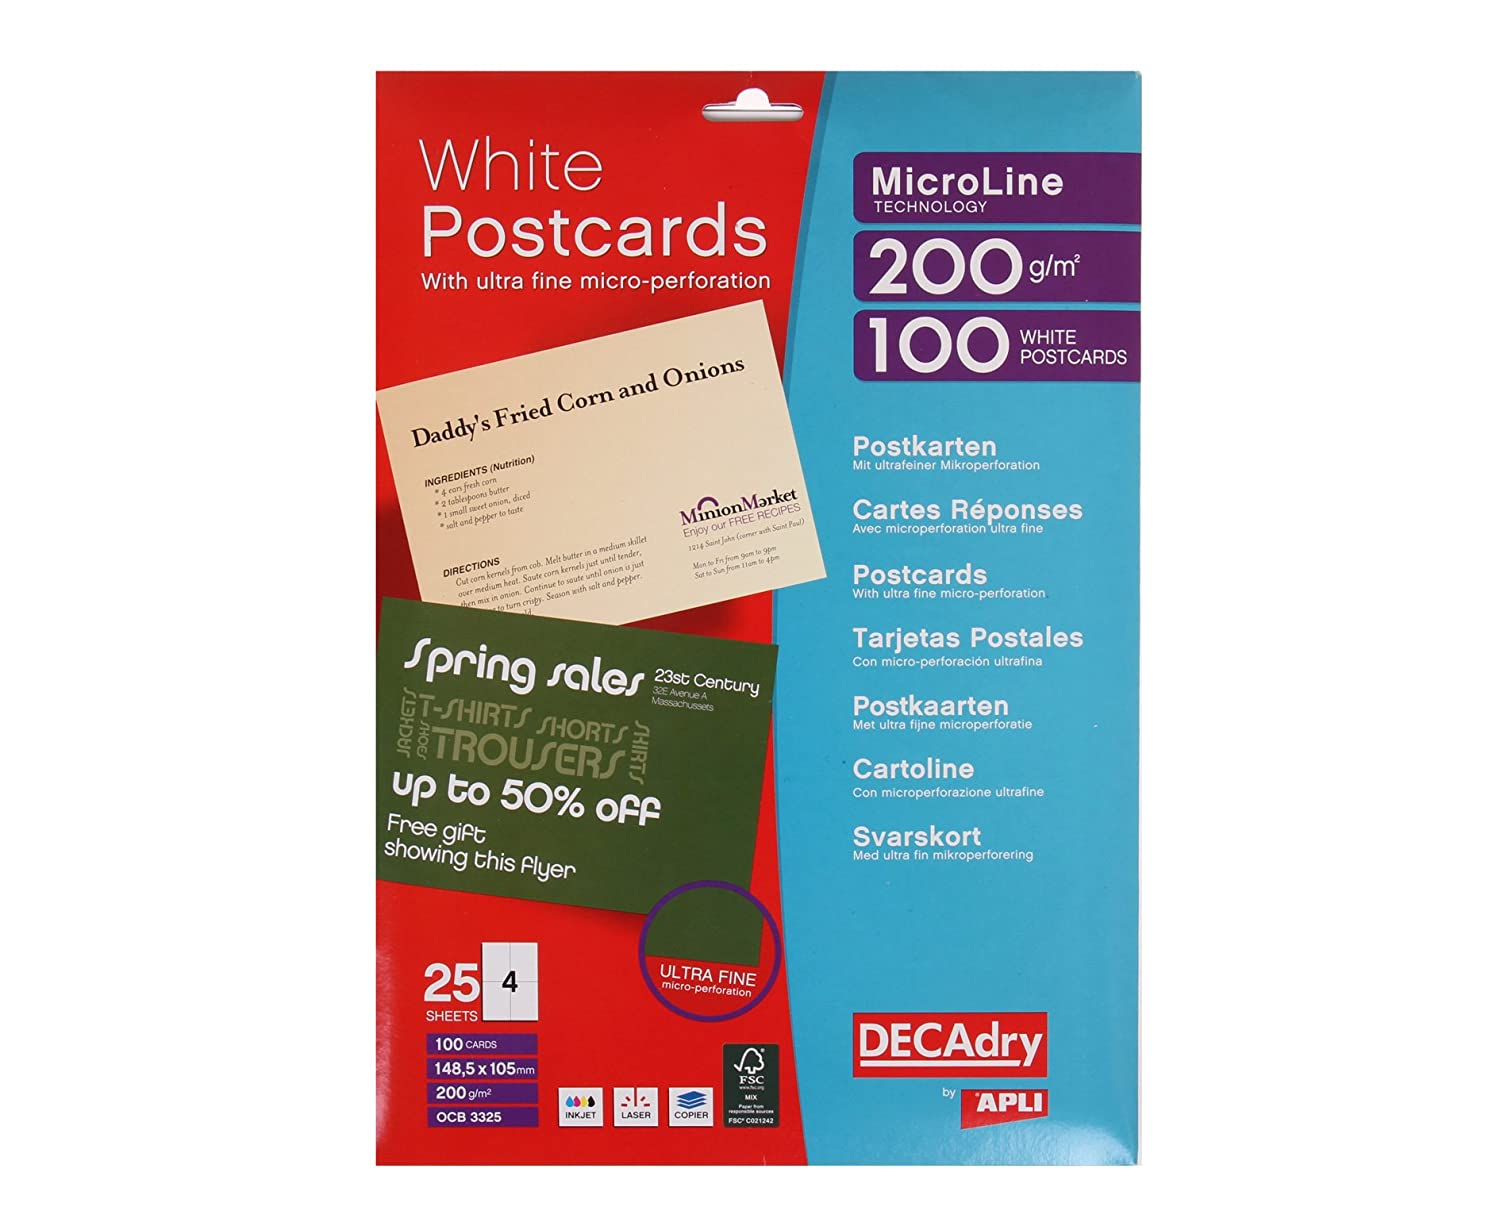 Decadry white postcards 200gsm microperforated 4 per a4 sheet 1485 decadry white postcards 200gsm microperforated 4 per a4 sheet 1485x105mm ref ocb3325 pack of 100 cards amazon office products reheart Gallery